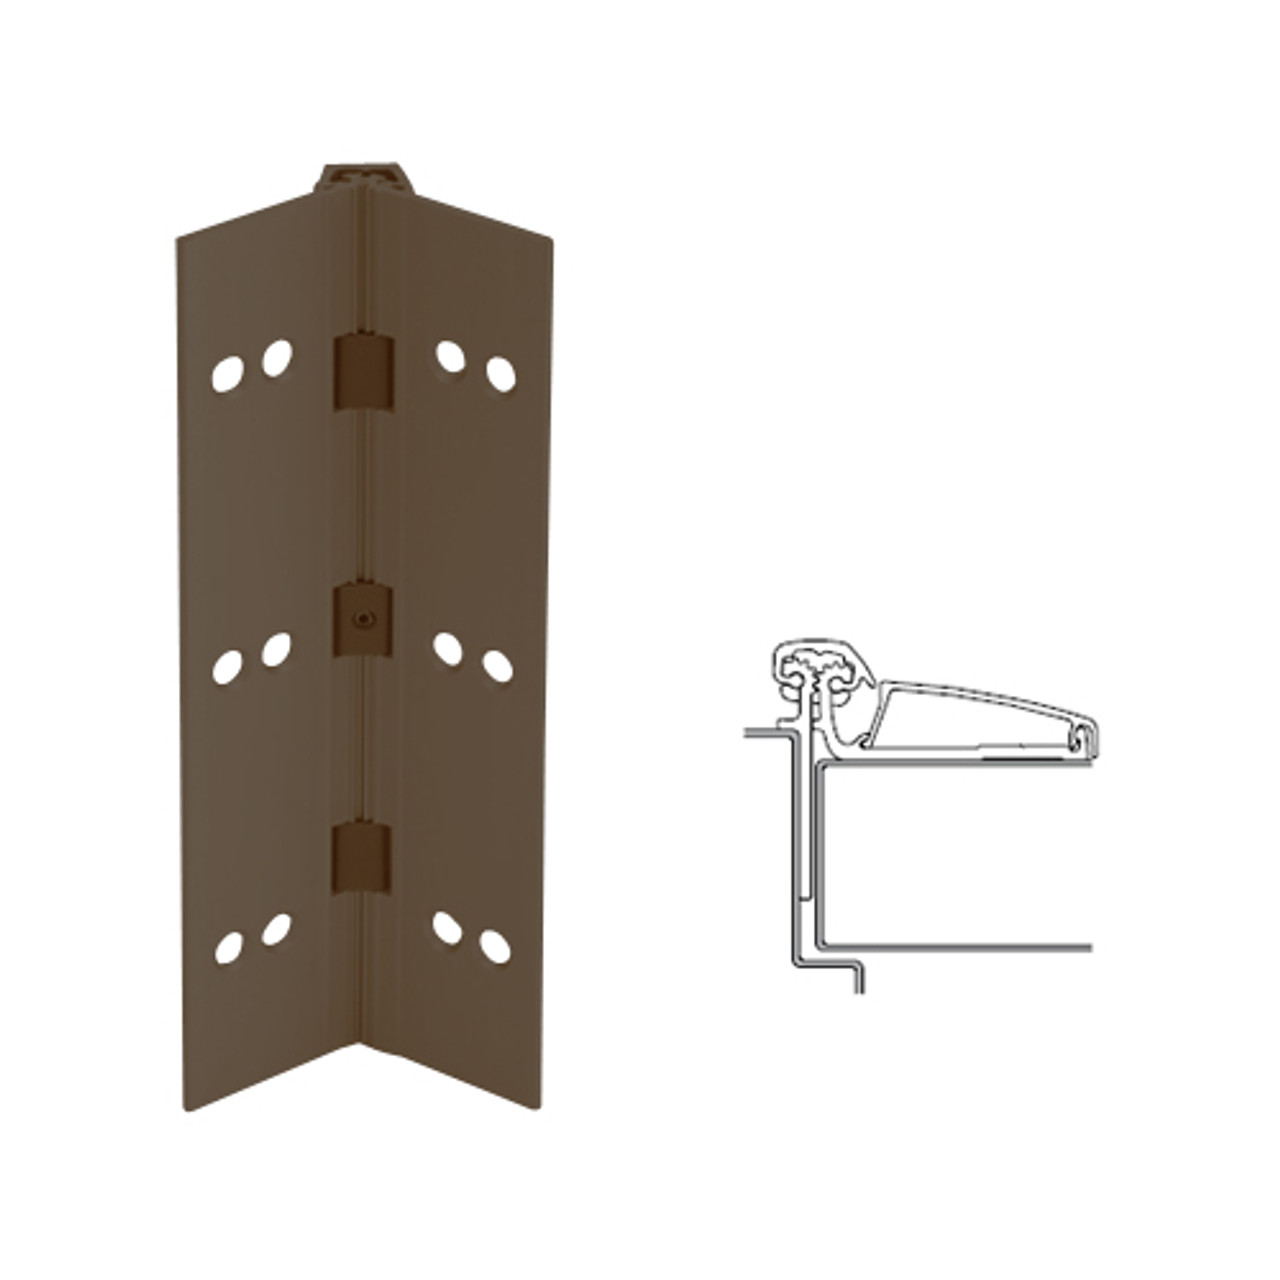 045XY-313AN-83-SECWDHM IVES Adjustable Half Surface Continuous Geared Hinges with Security Screws - Hex Pin Drive in Dark Bronze Anodized